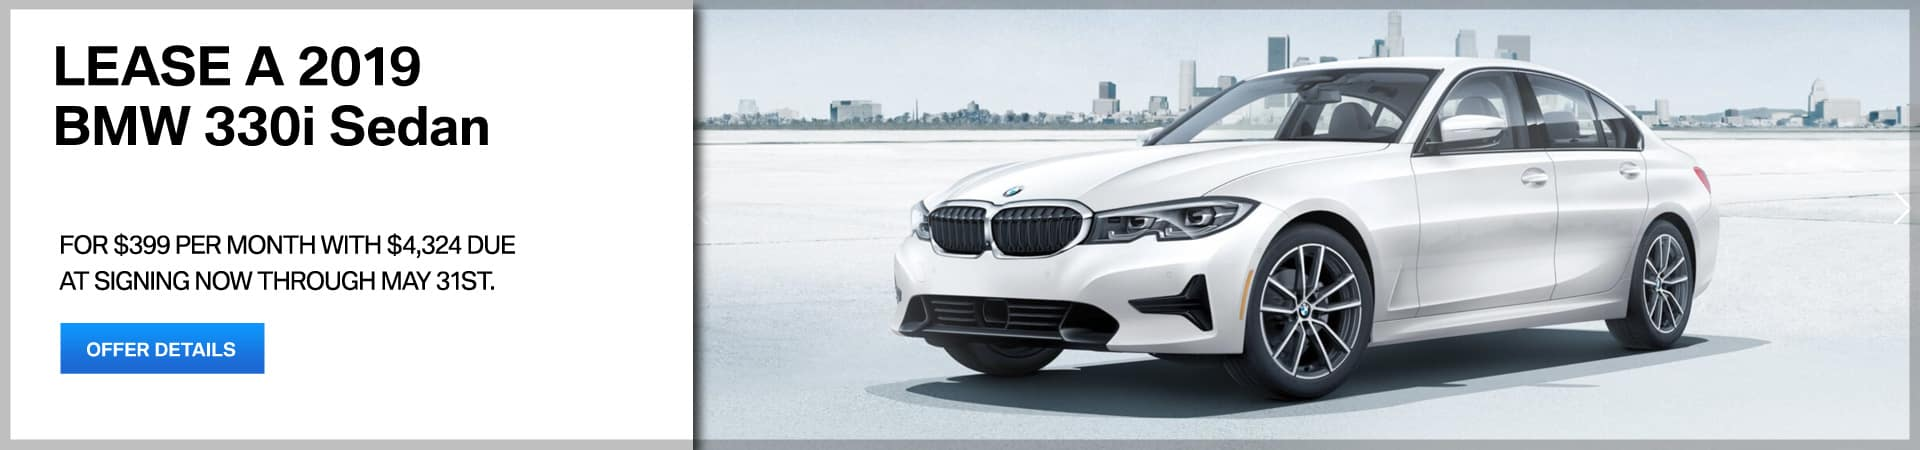 Autobahn BMW - 3 Series Lease Special